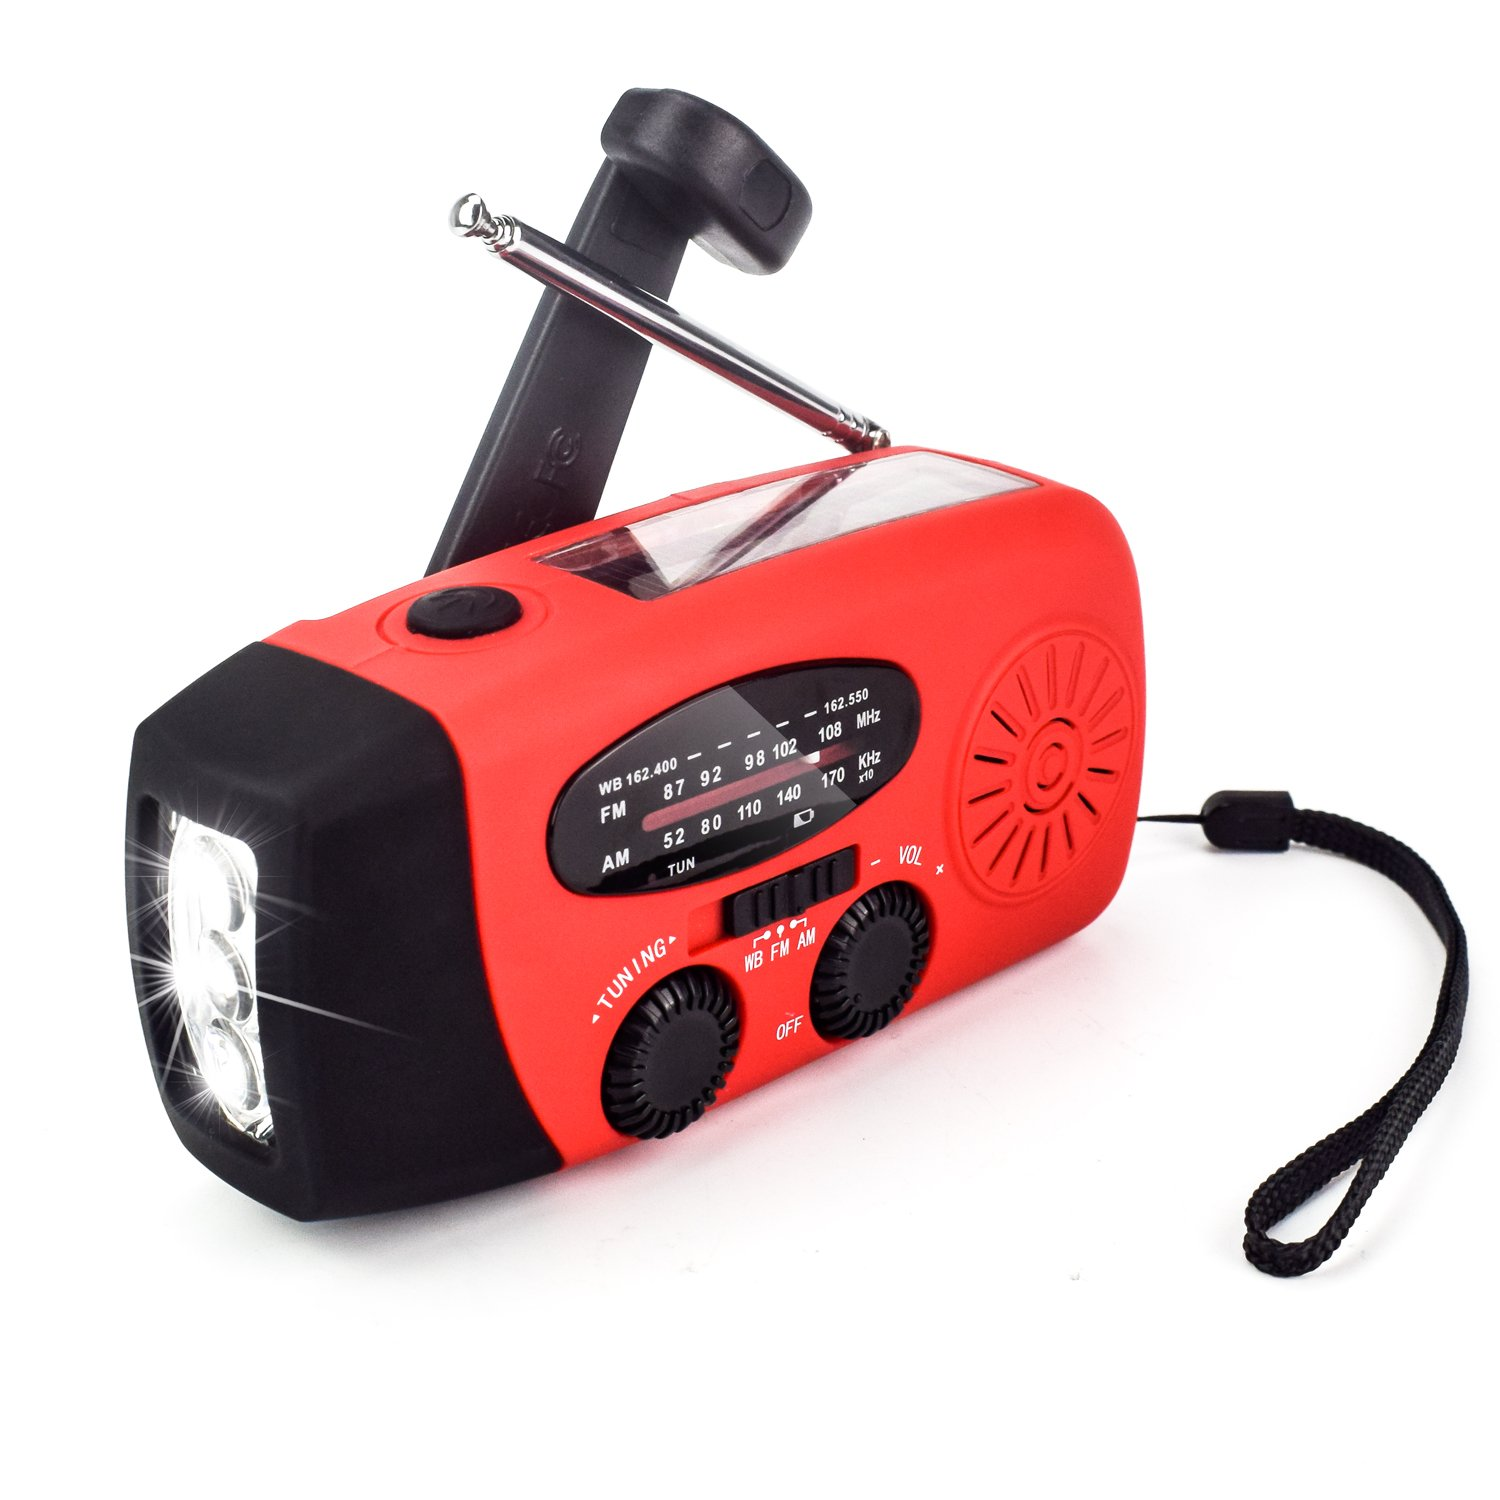 PerryLee AM/FM/WB Radio, Portable Outdoor Emergency Solar Radio, Hand Crank Self Powered Phone Charger 1000mAh Power Bank with Cable & 3 LED Flashlight Electric Torch Dynamo Bright Lighting Lamp